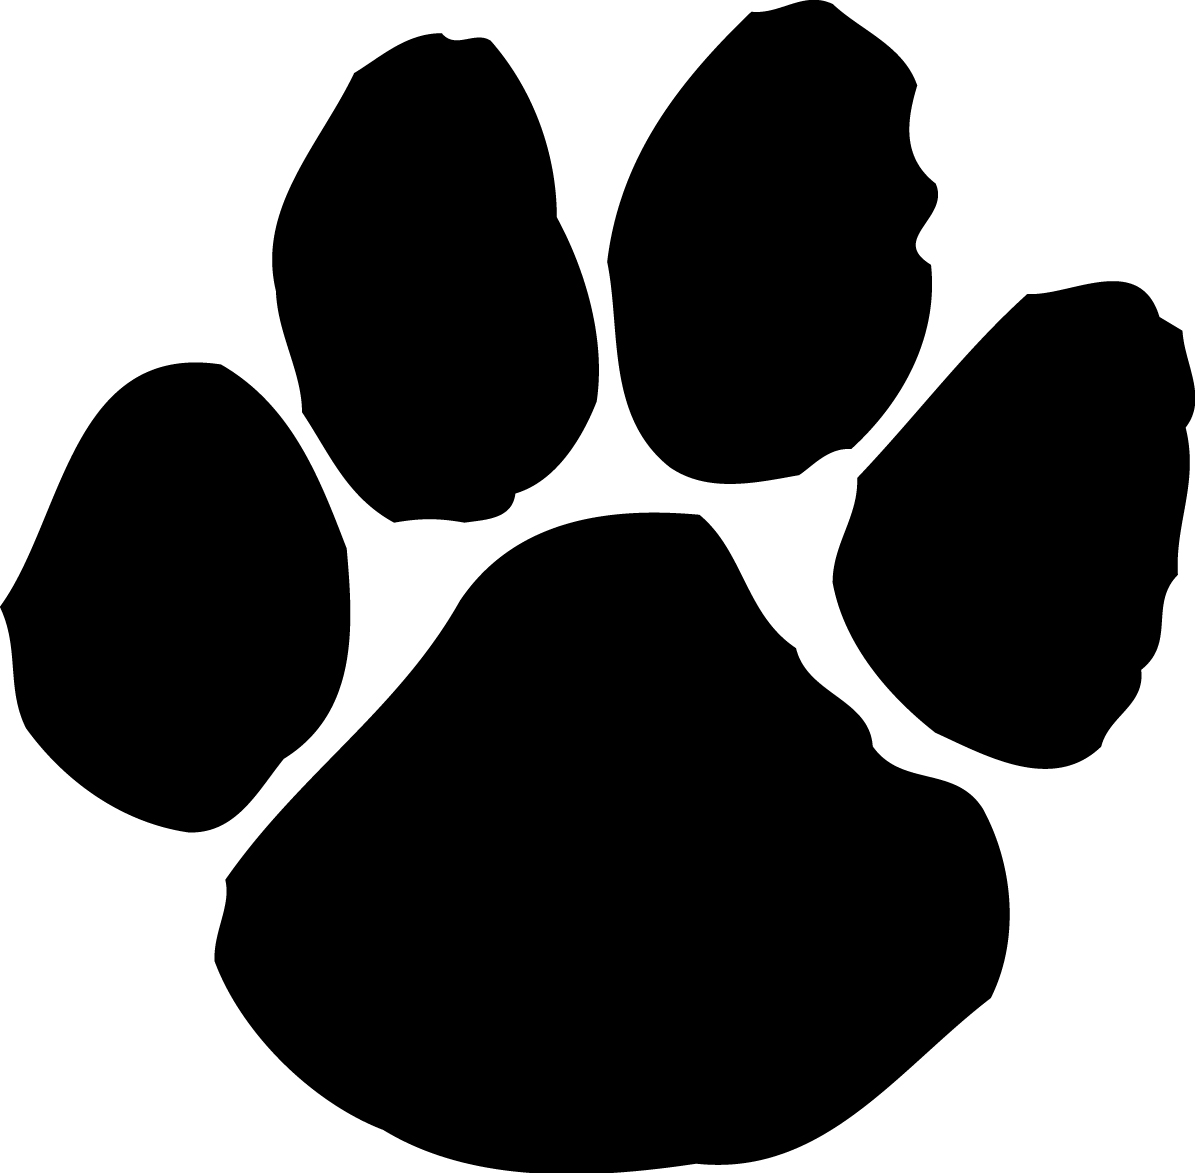 Clipart Of Dog Paws. Paw print tattoos on dog paw .